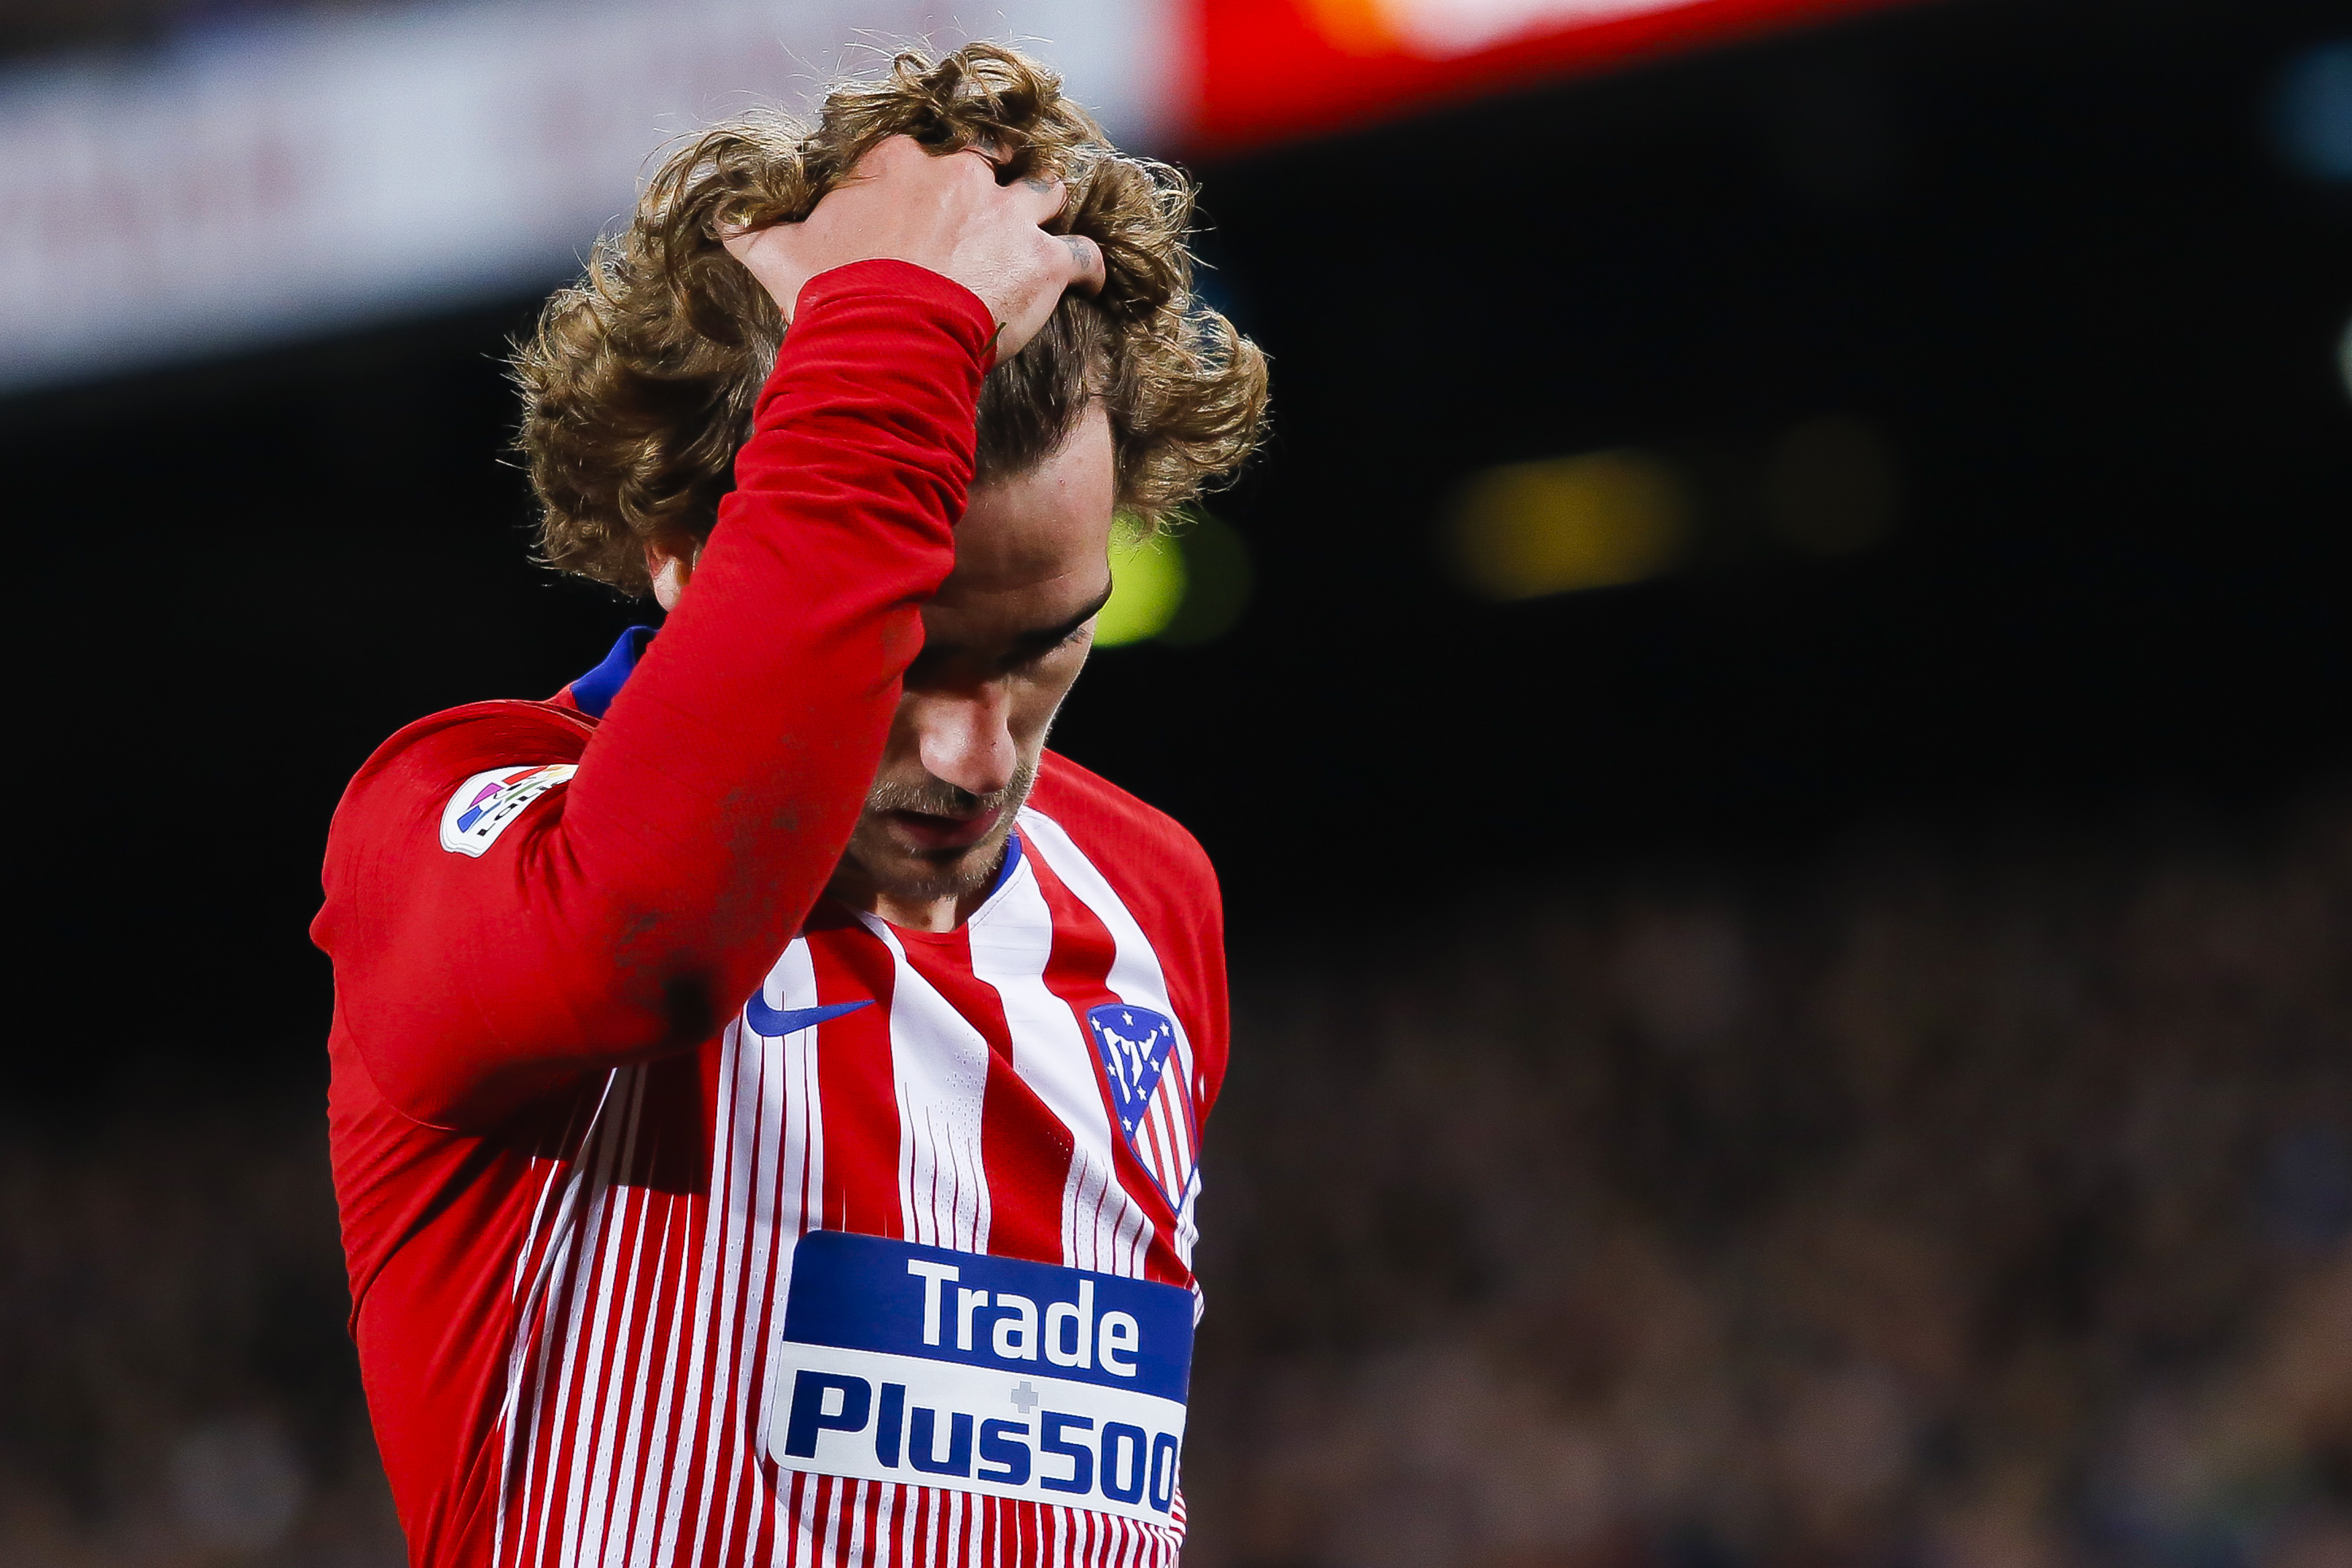 Antoine Griezmann with Atletico Madrid (Image Credit: PA)